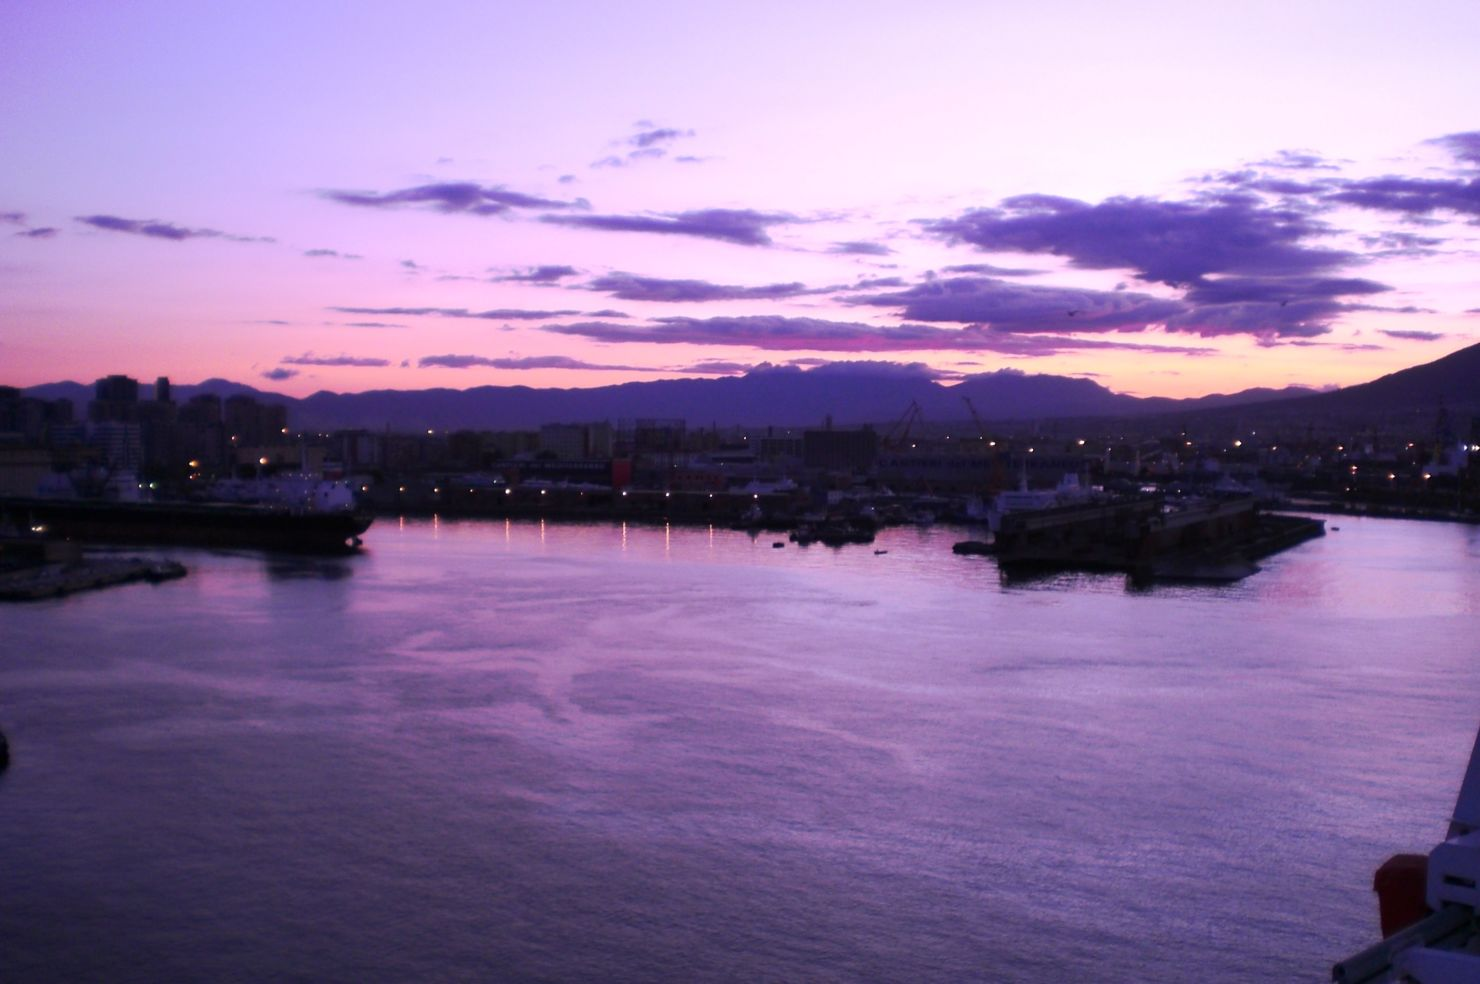 A purple sunrise over Palermo, Sicily